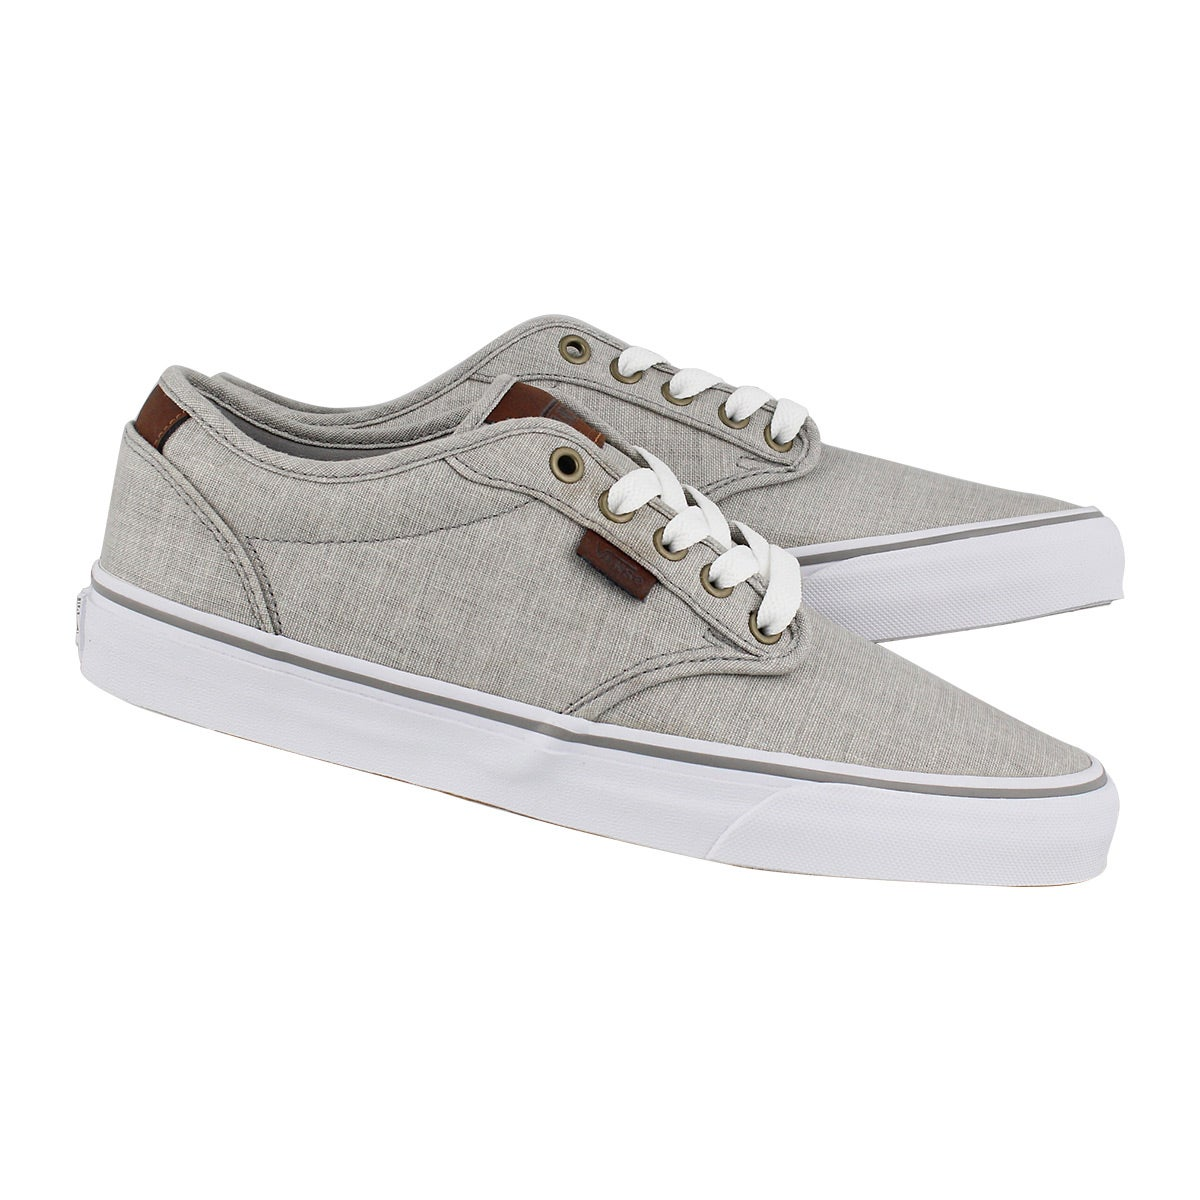 Mns Atwood Deluxe frost grey/wht snkr